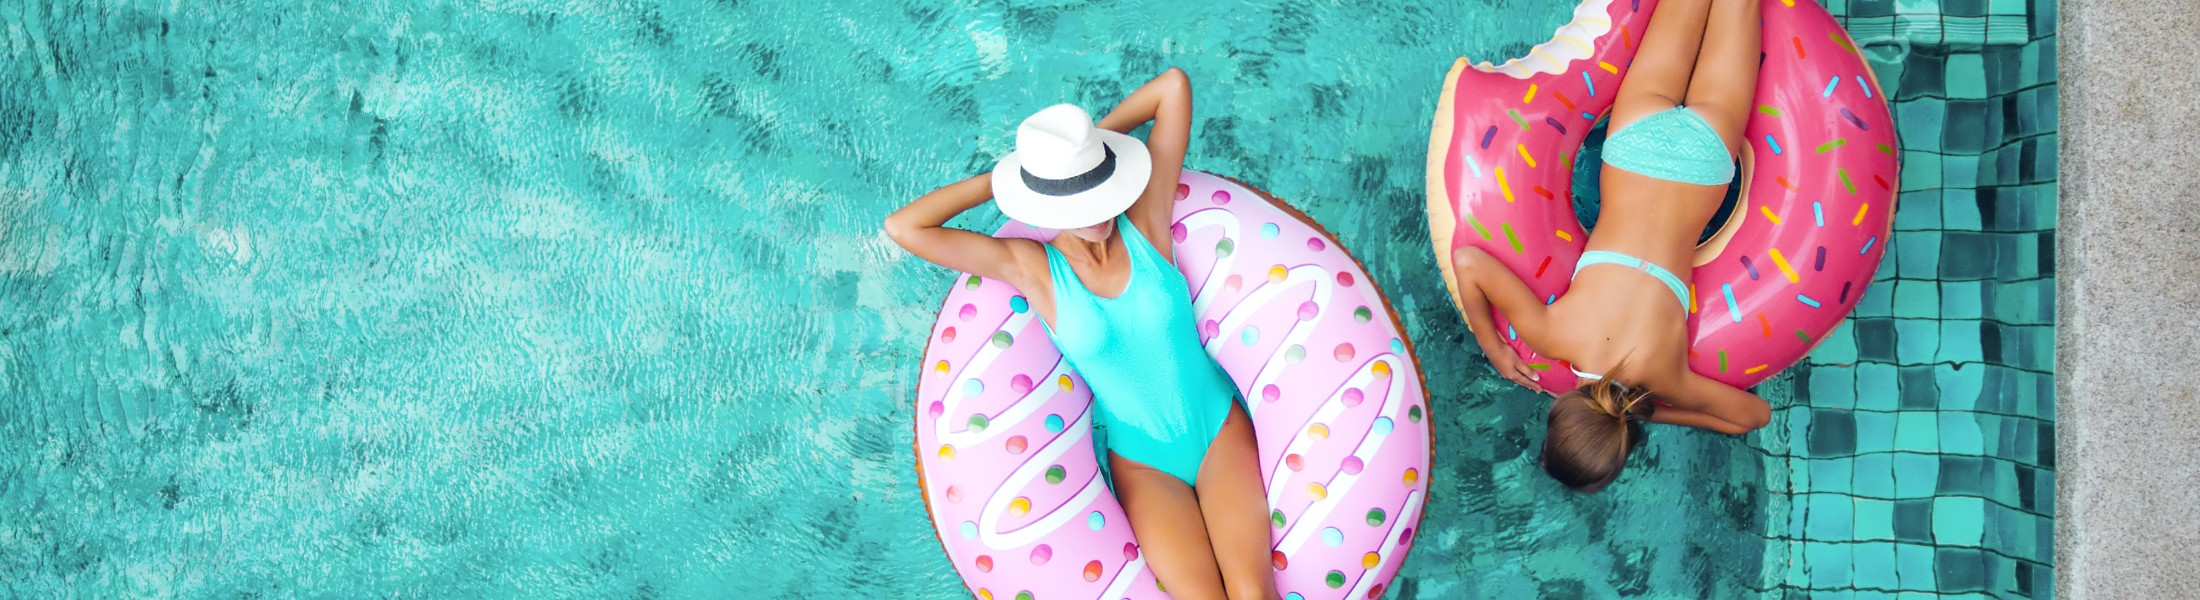 Woman on pool floats in their villa pool